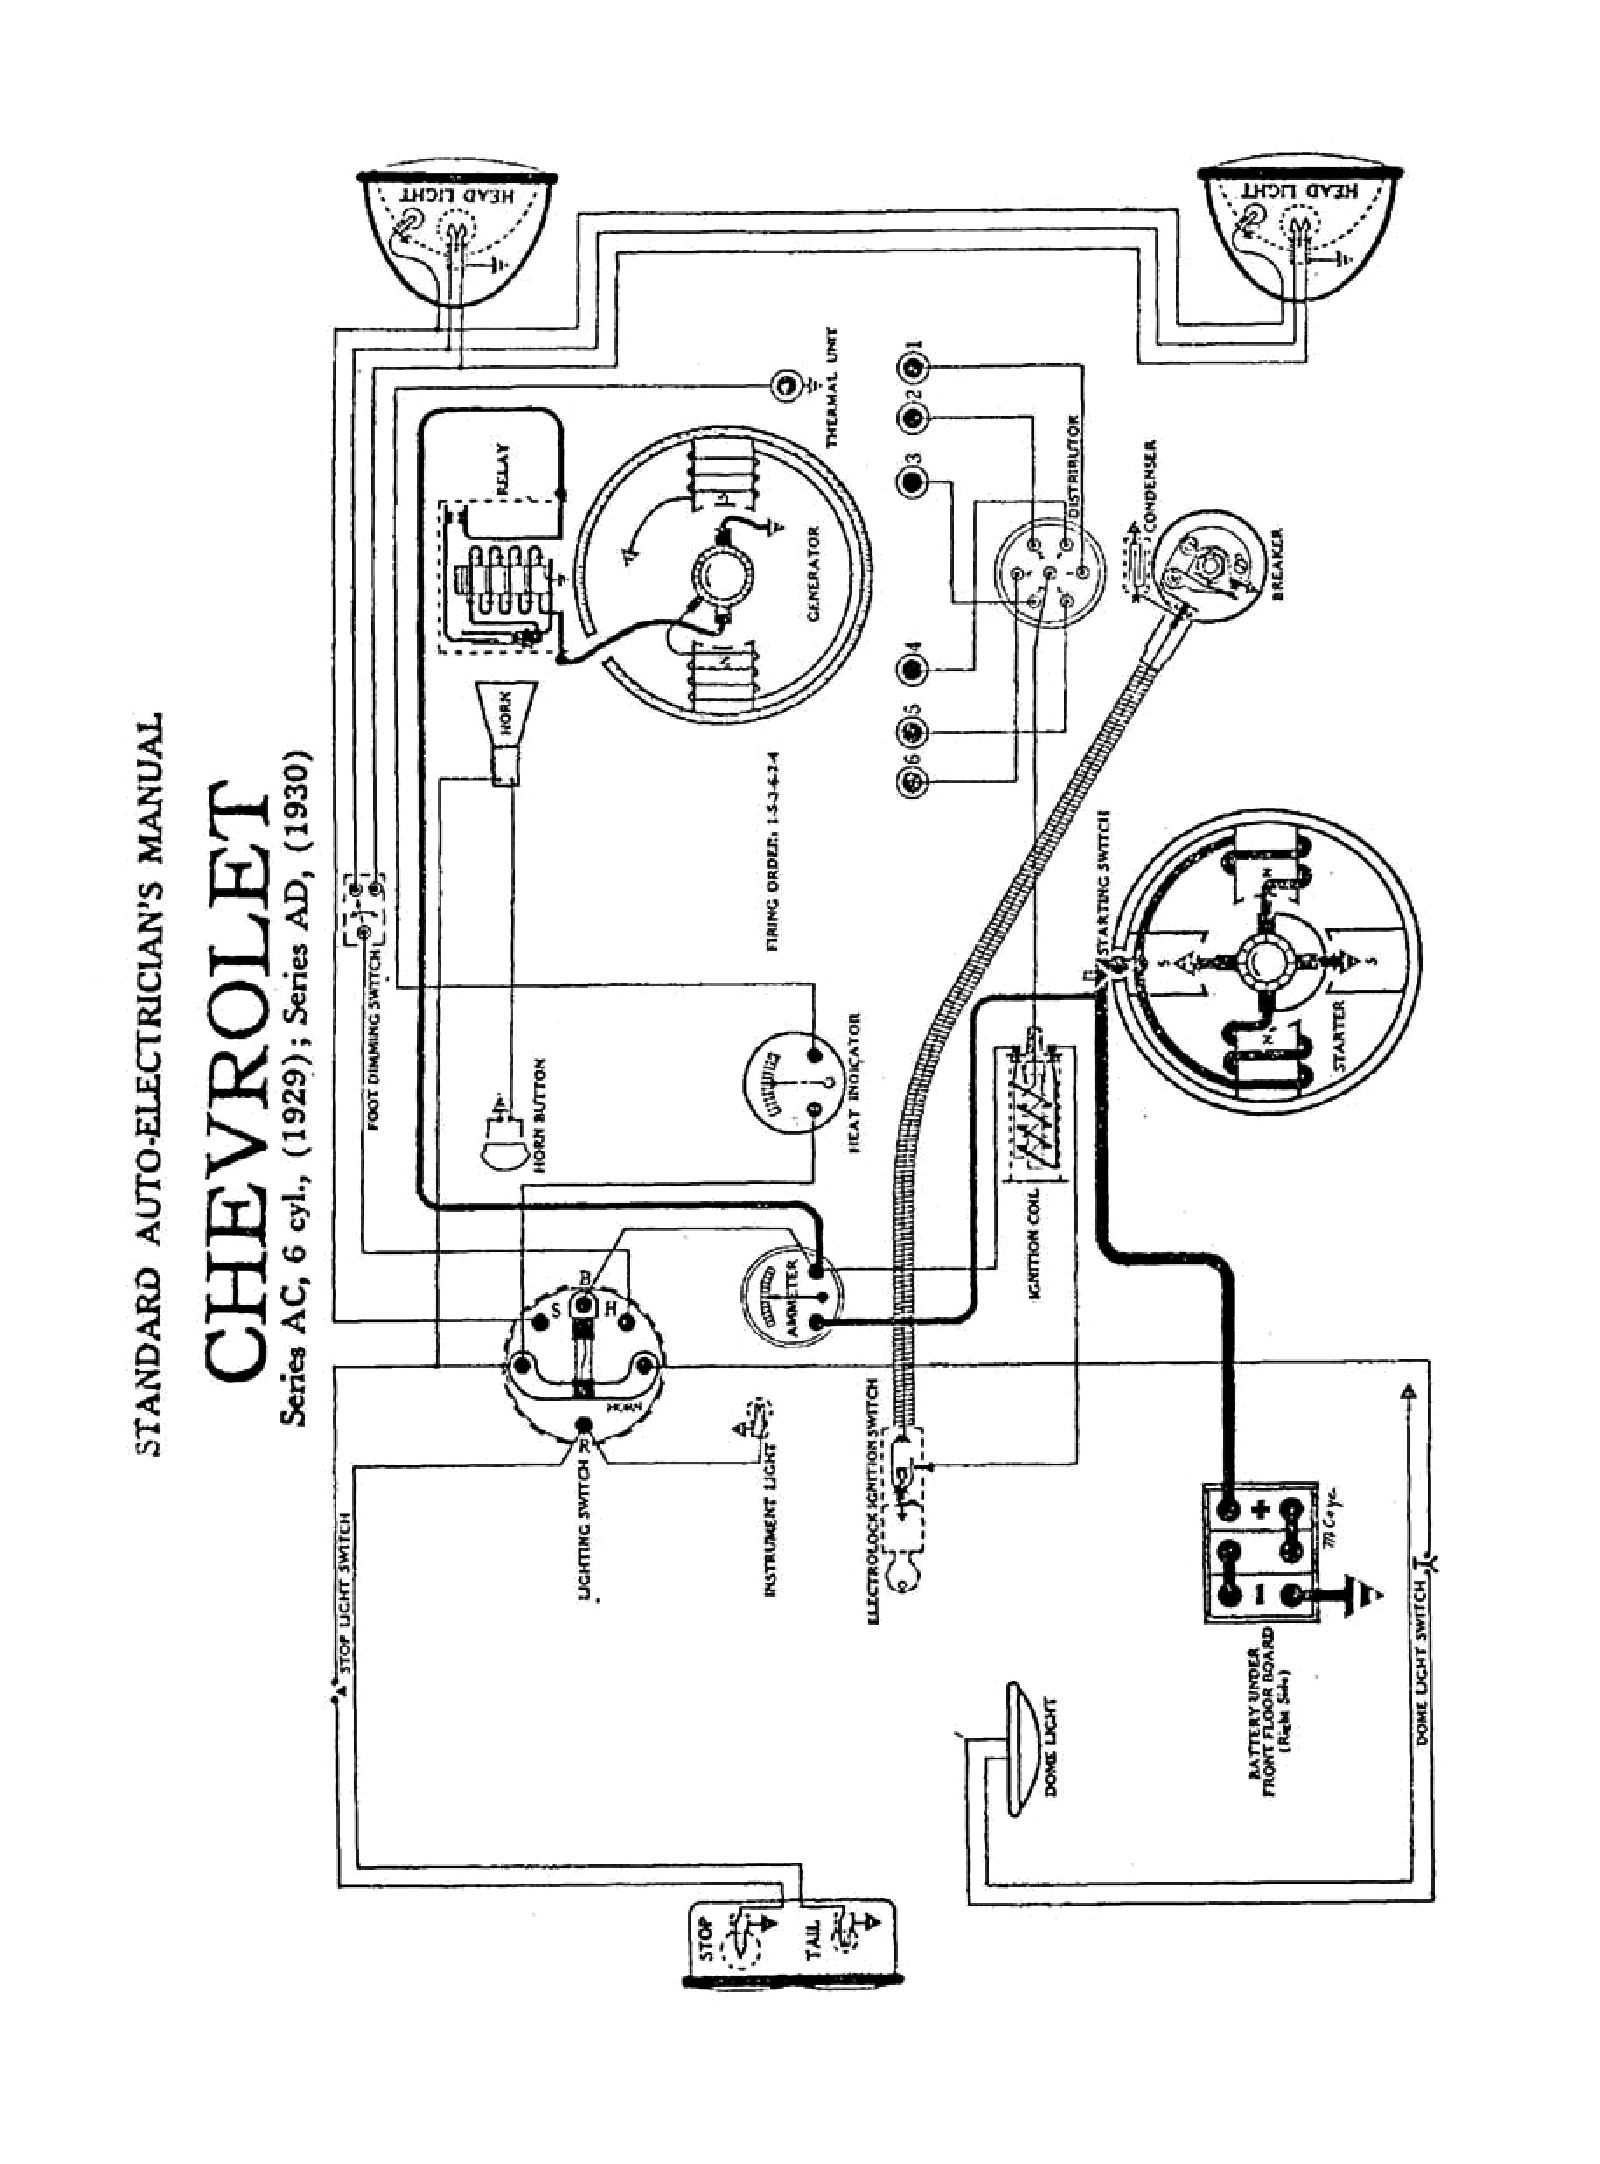 hight resolution of electric brake wiring schematic